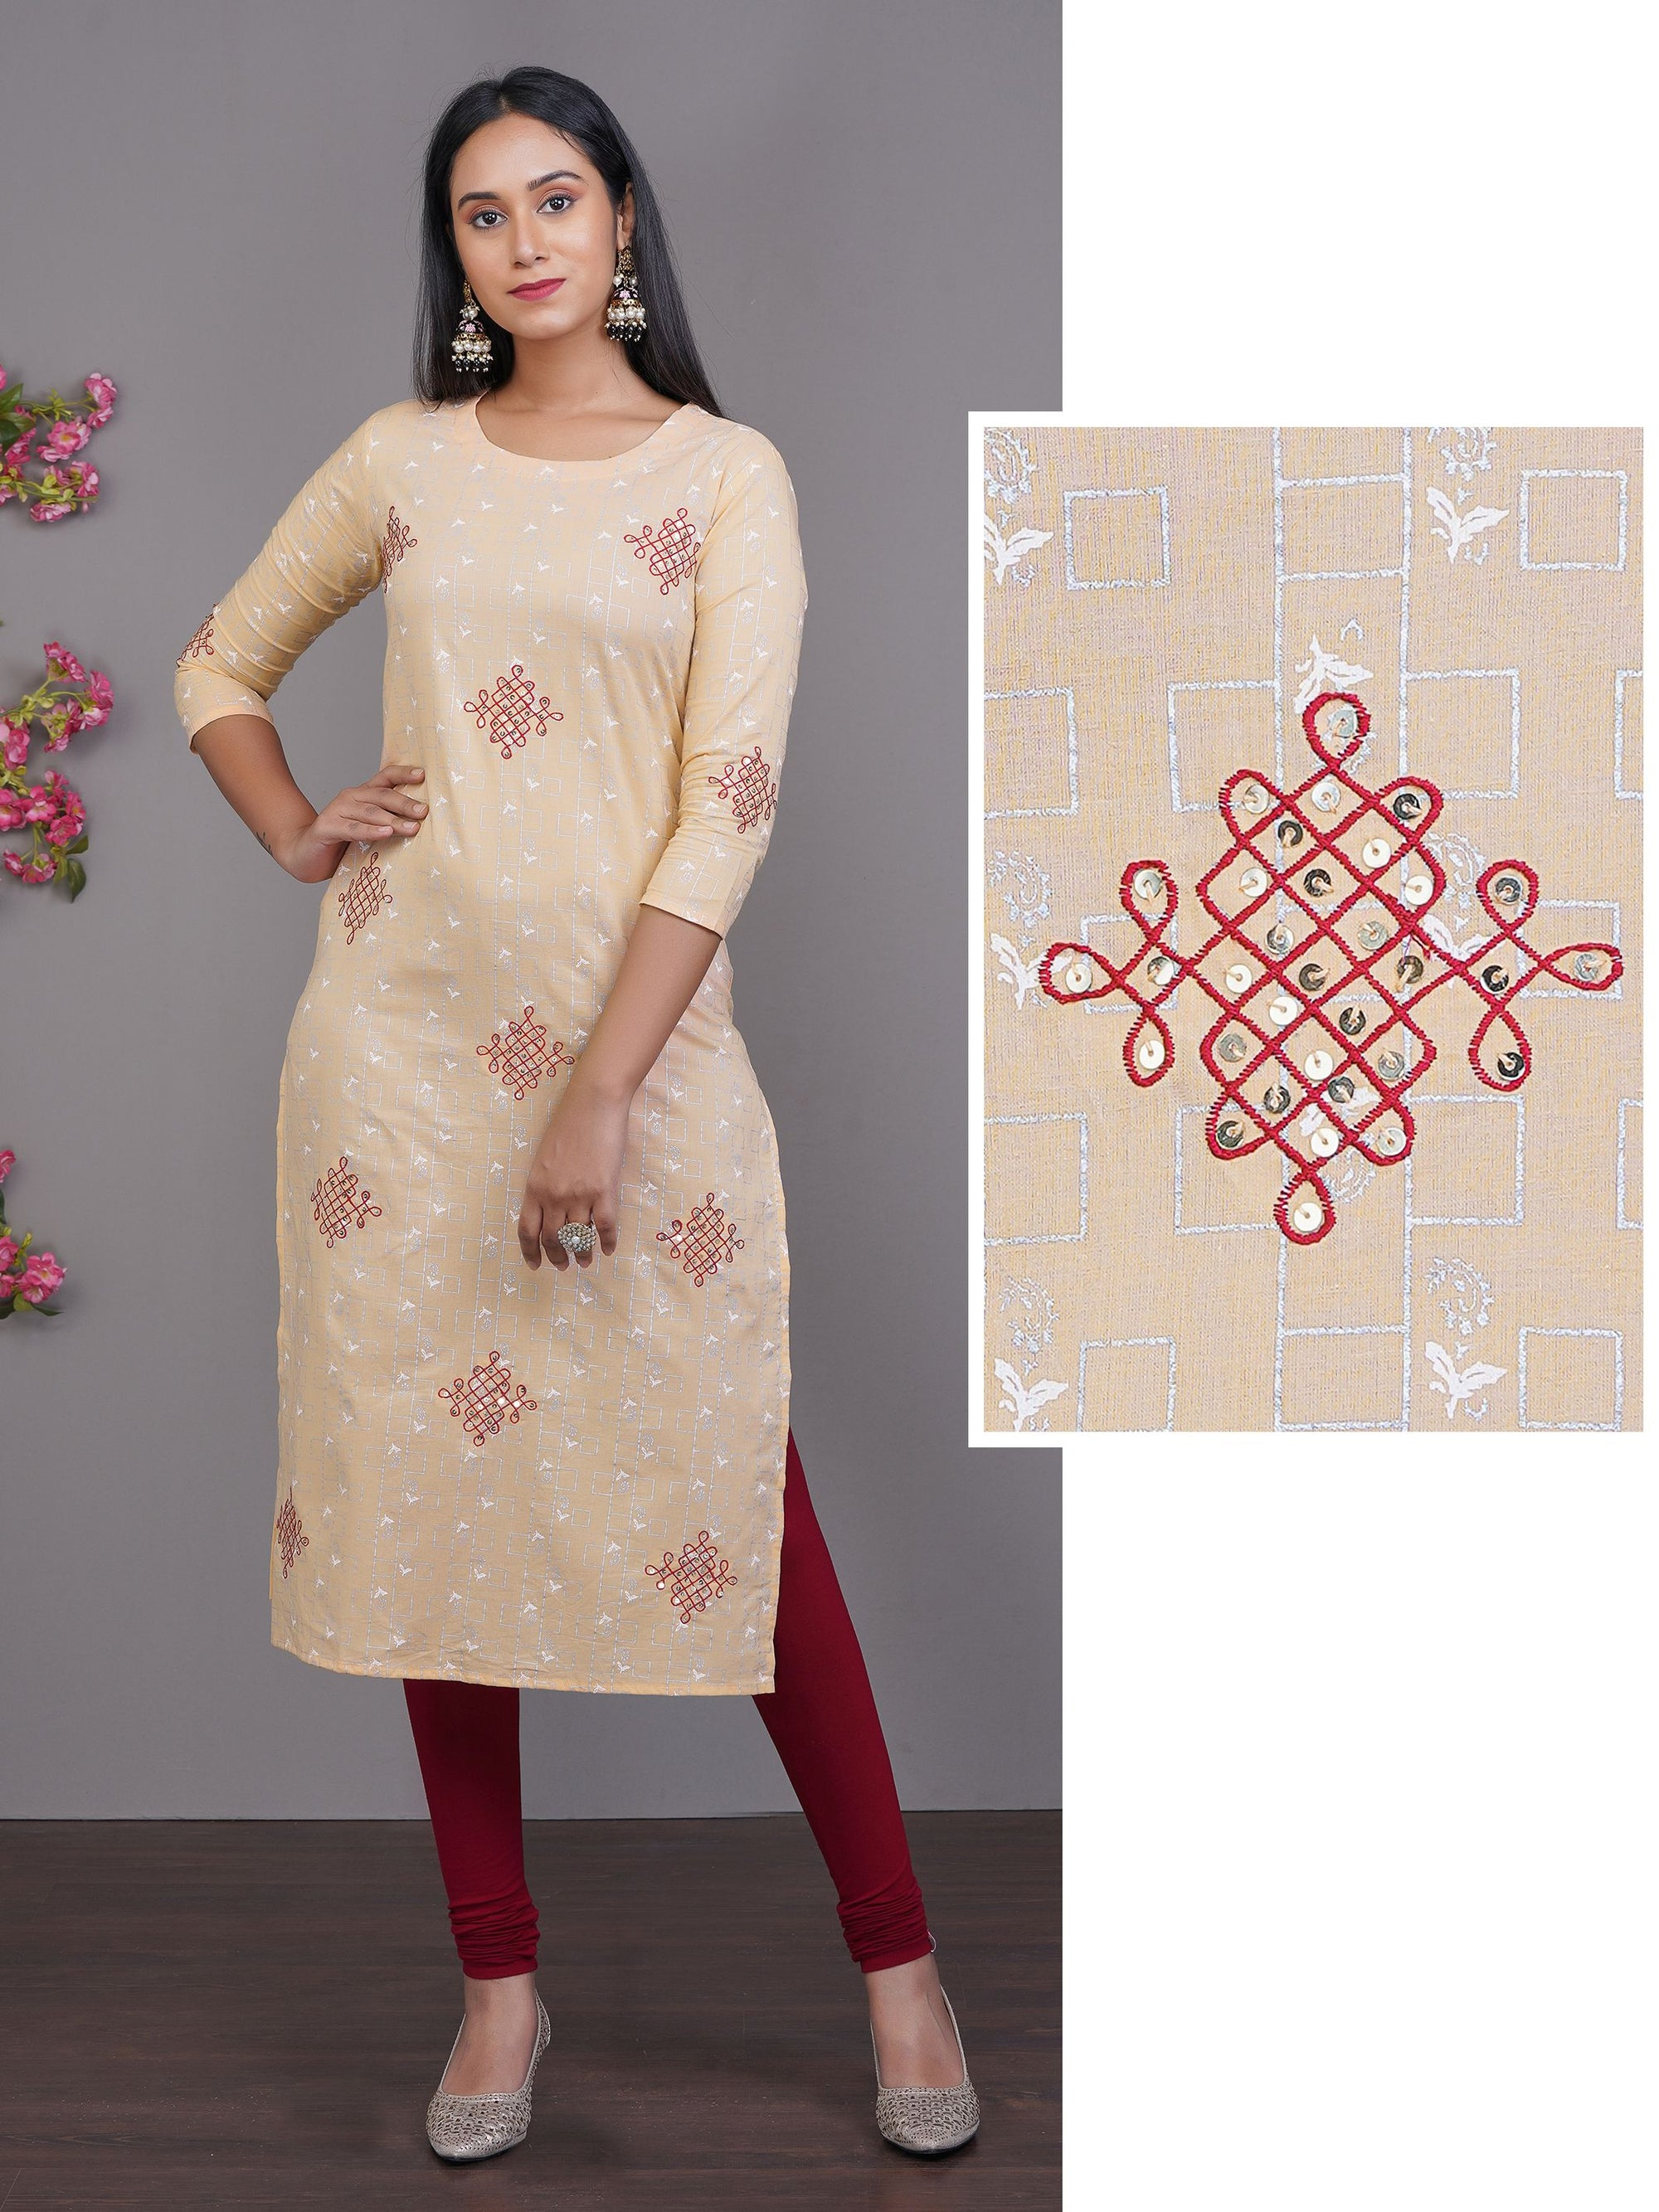 Geometric & Paisley Printed Kurti With Embroidered Motif Embellished with Sequins all over Kurti – Peach